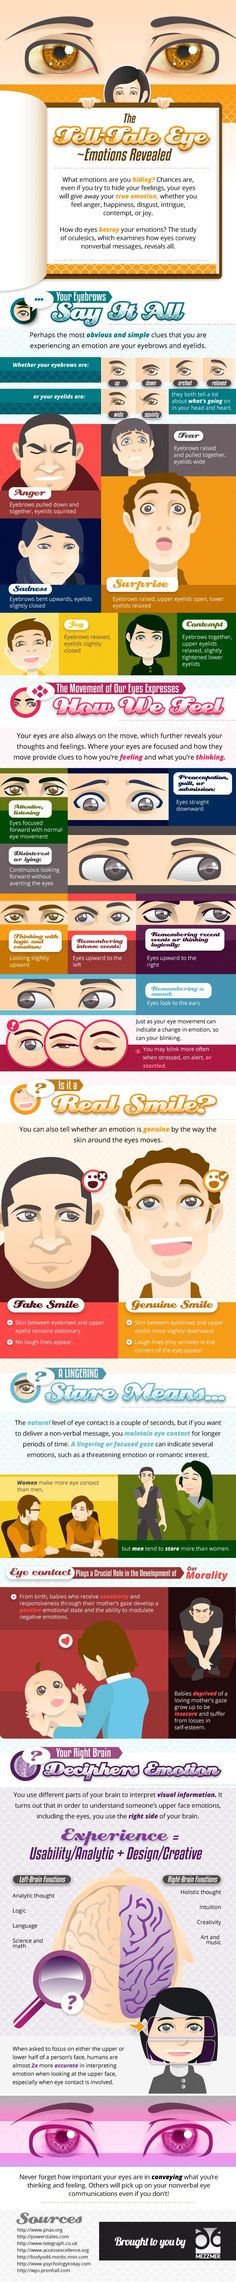 The tell-tale-eye: Emotions revealed #Infographic #Infografía